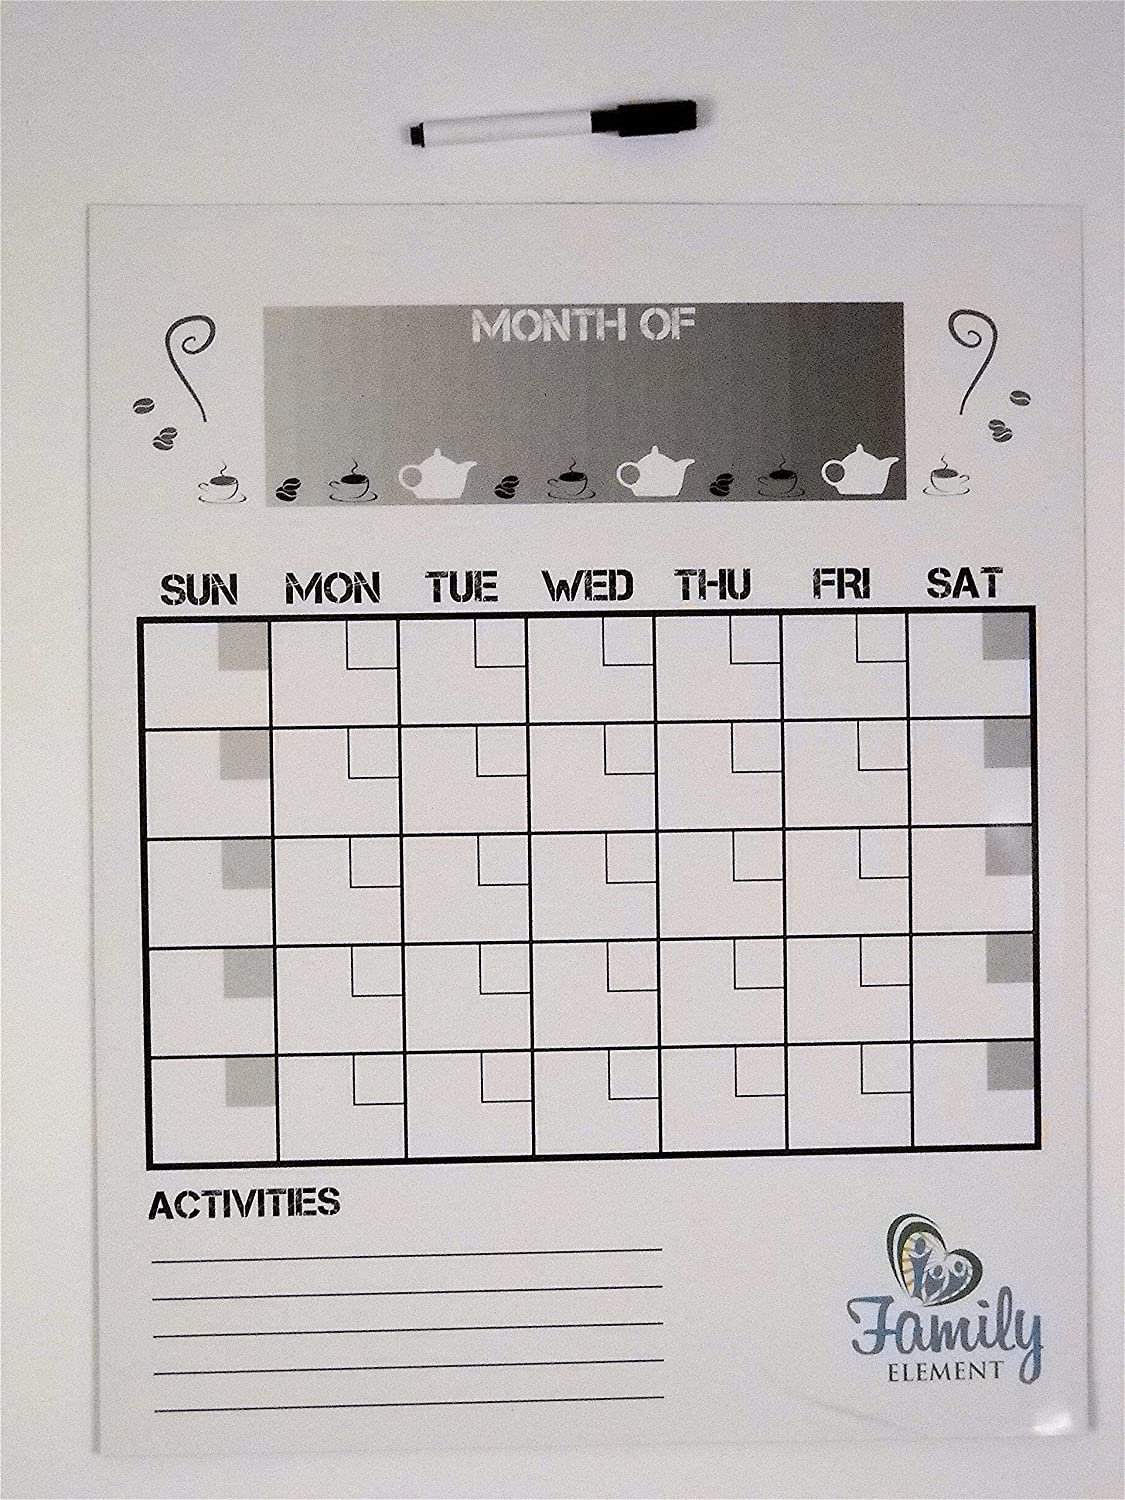 """Family Element's Large Monthly Dry Erase Refrigerator Magnet Calendar – Size 19.5x15.5"""" (Includes one fine point Black Dry Erase Marker)"""